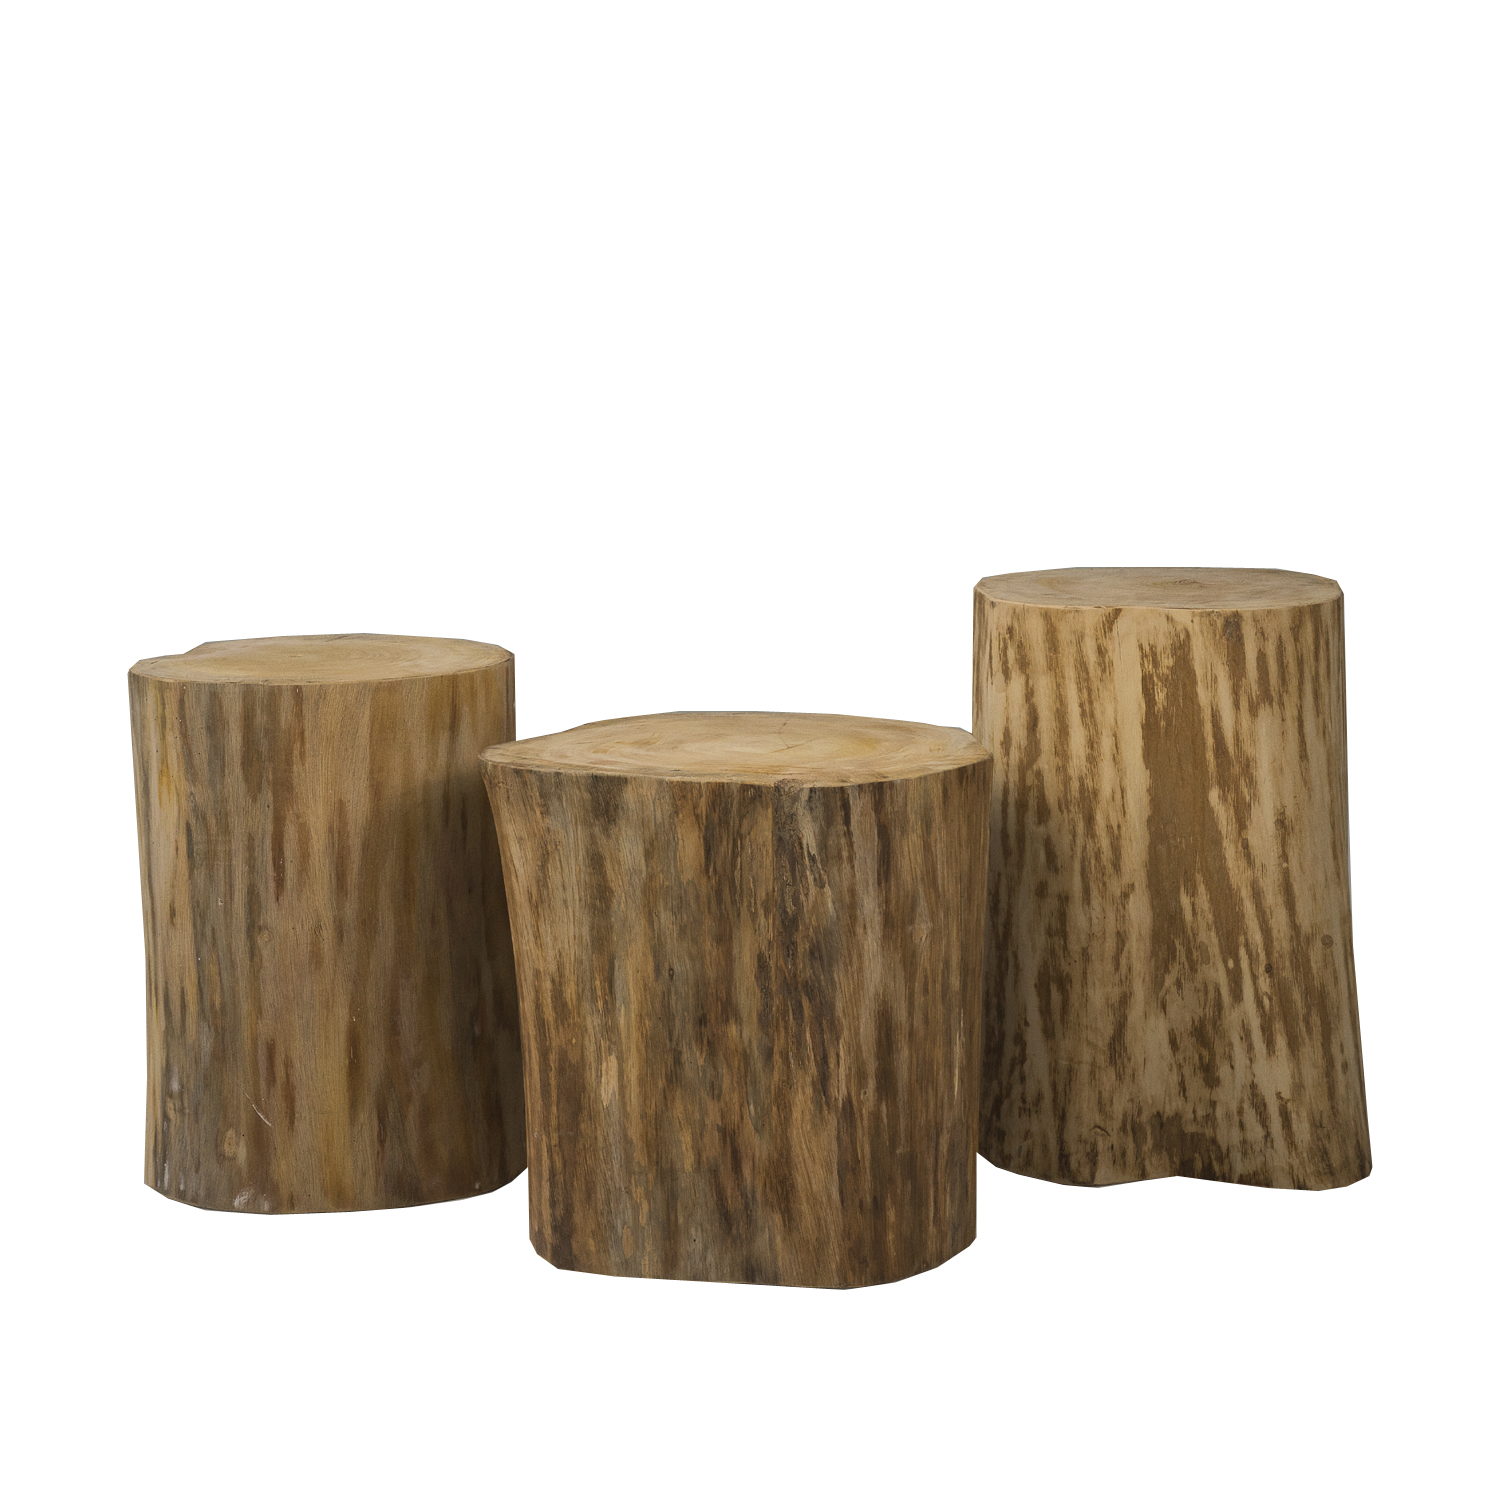 natural tree stump side table fair hotel supply end high modern dining tables living room furniture names decorating ideas using black leather outdoor lounge chairs clearance